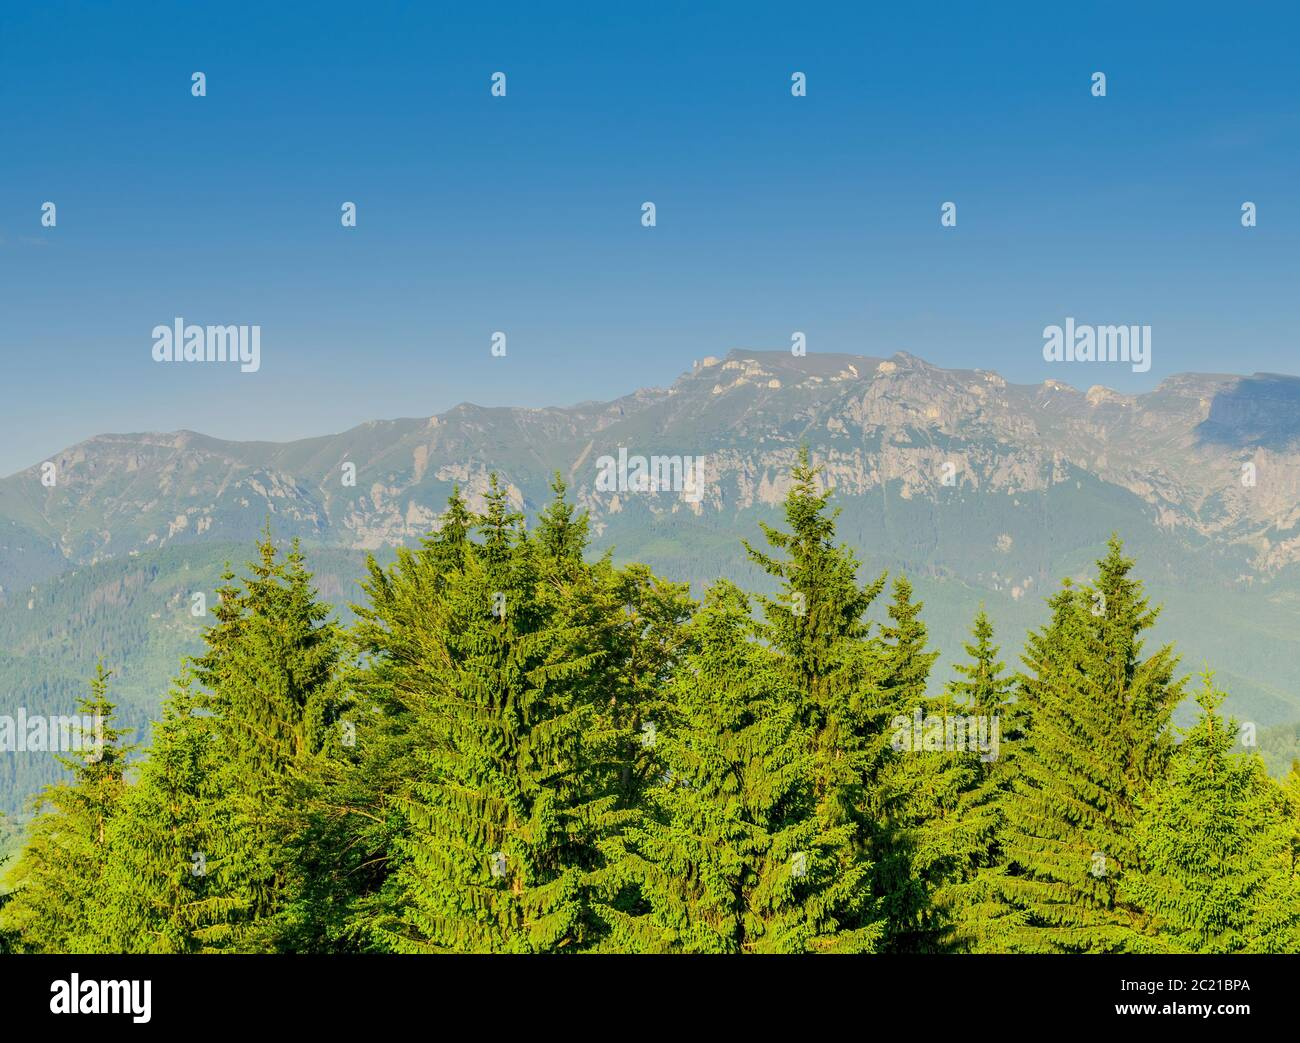 Green trees of forest growing near mountain range against blue sky on sunny day in nature Stock Photo